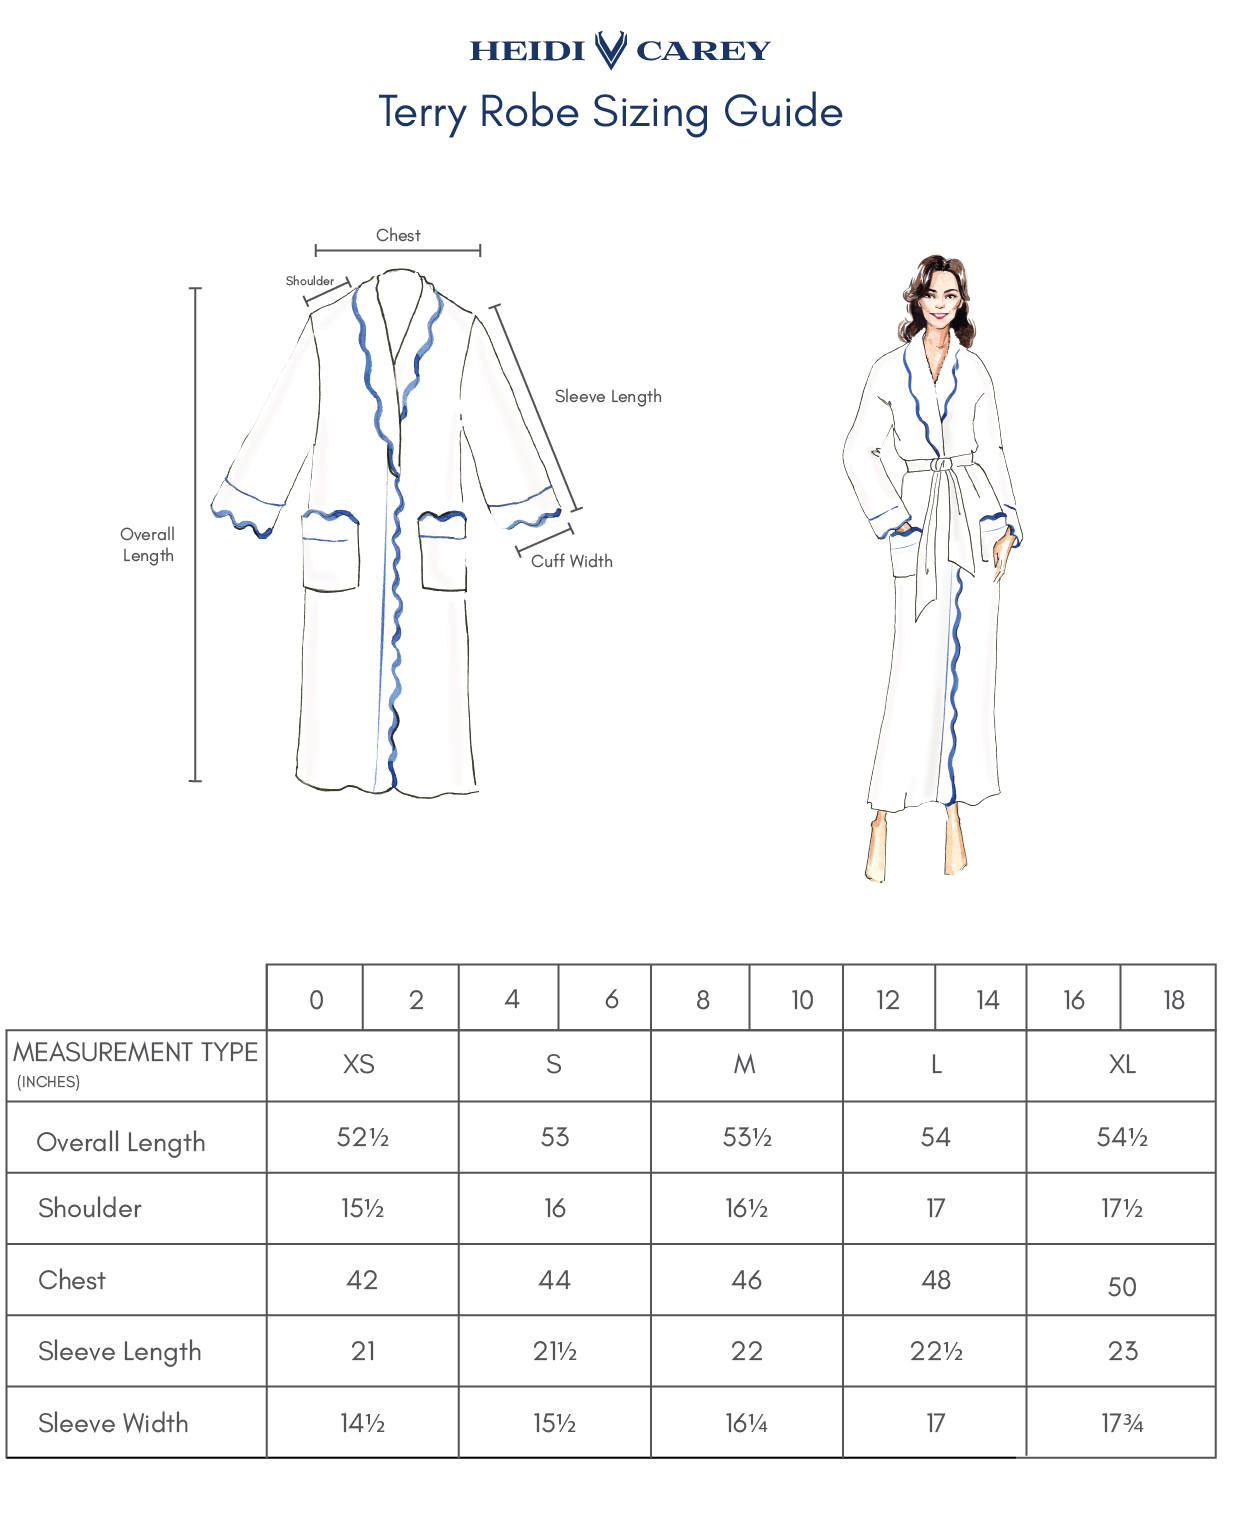 French Terry Robe Sizing Guide